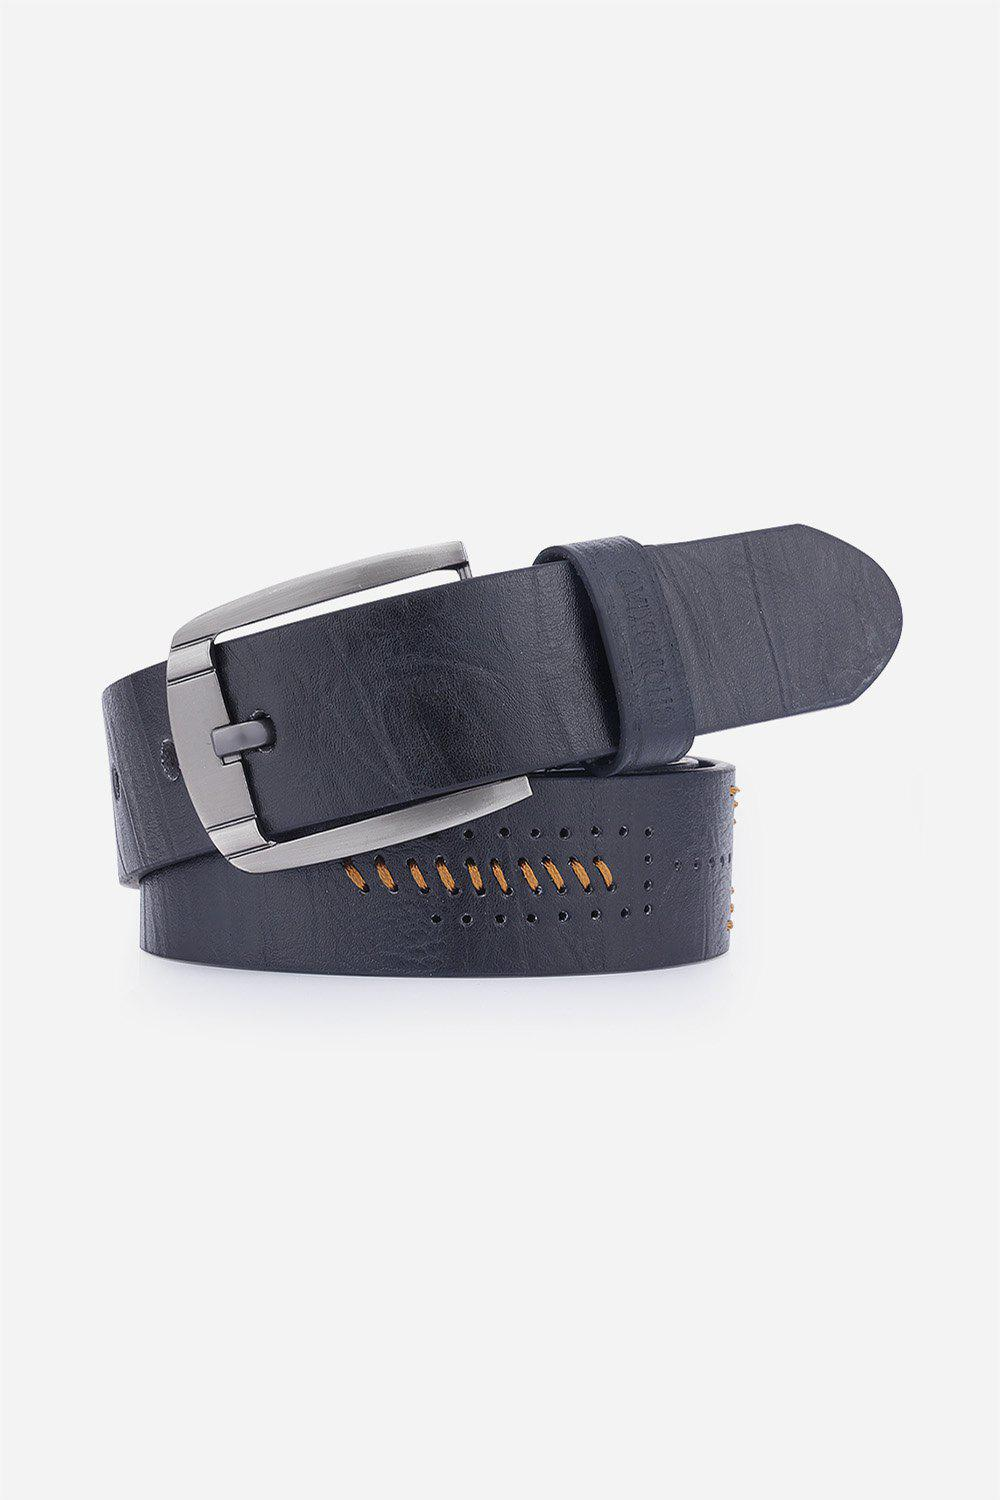 Pin Buckle Fake Leather Embroidered Holes Belt - BLACK